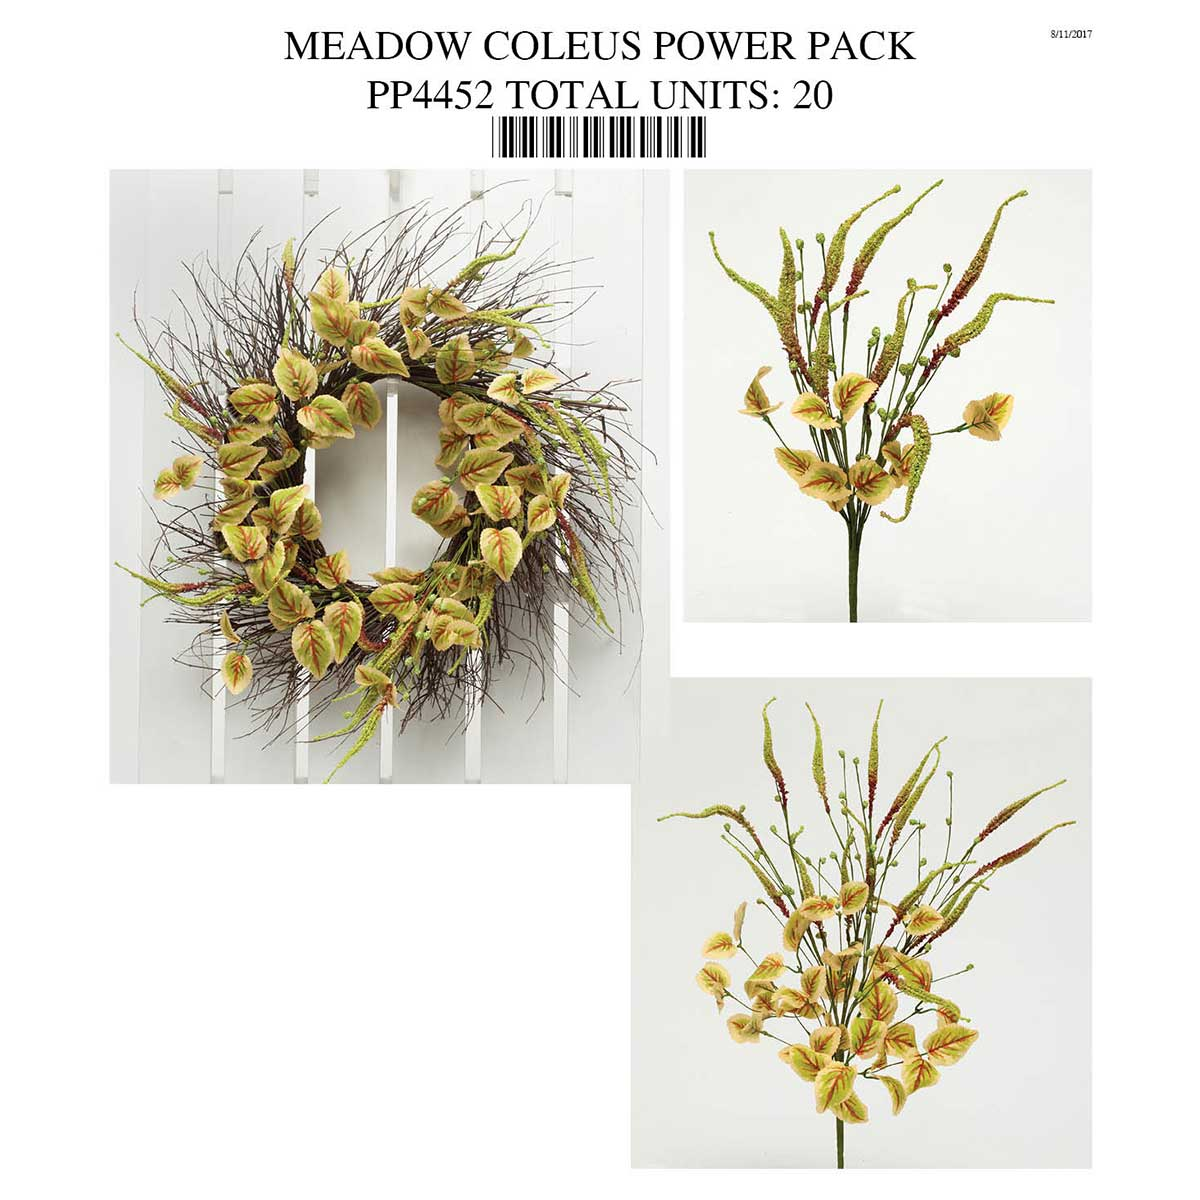 MEADOW COLEUS POWER PACK PP4452